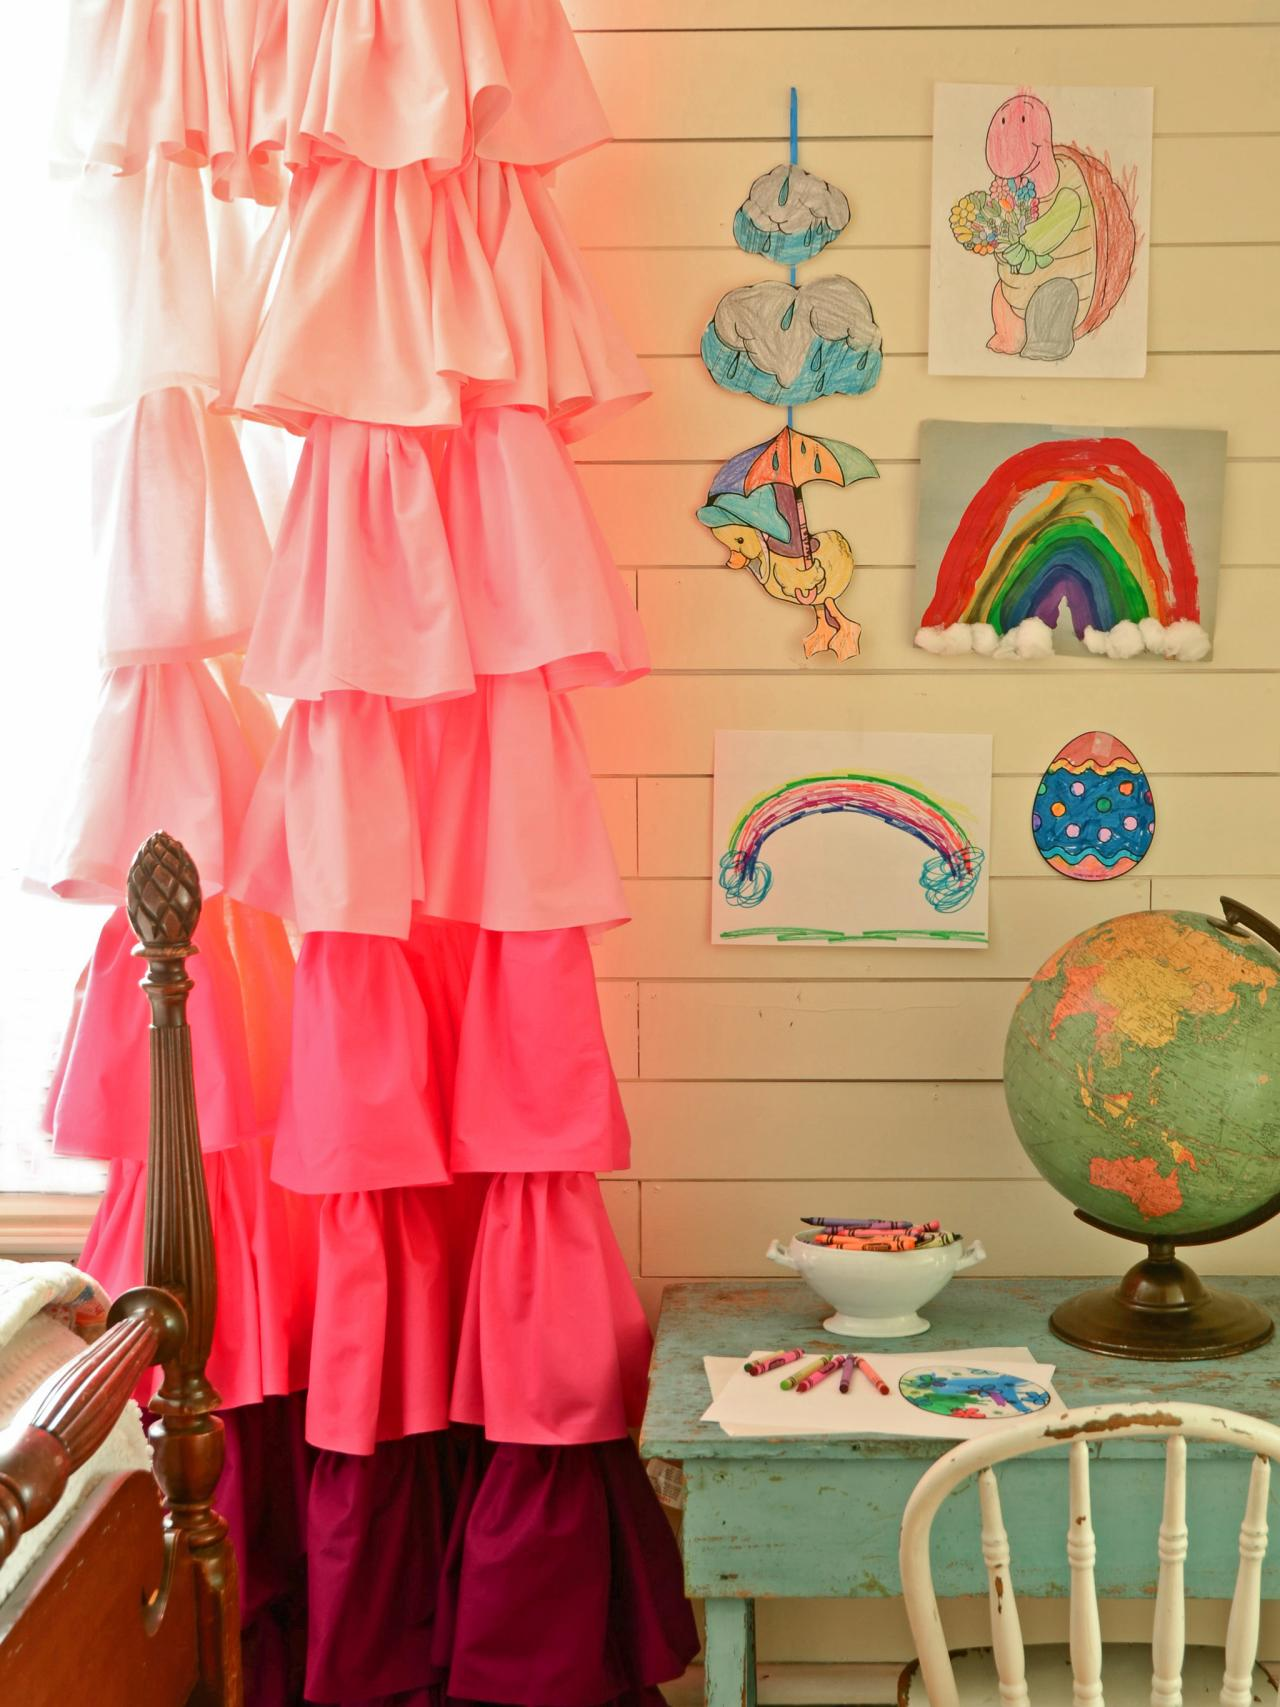 Diy ruffled shower curtain - Make Ombre Ruffled Curtains Using Bed Sheets